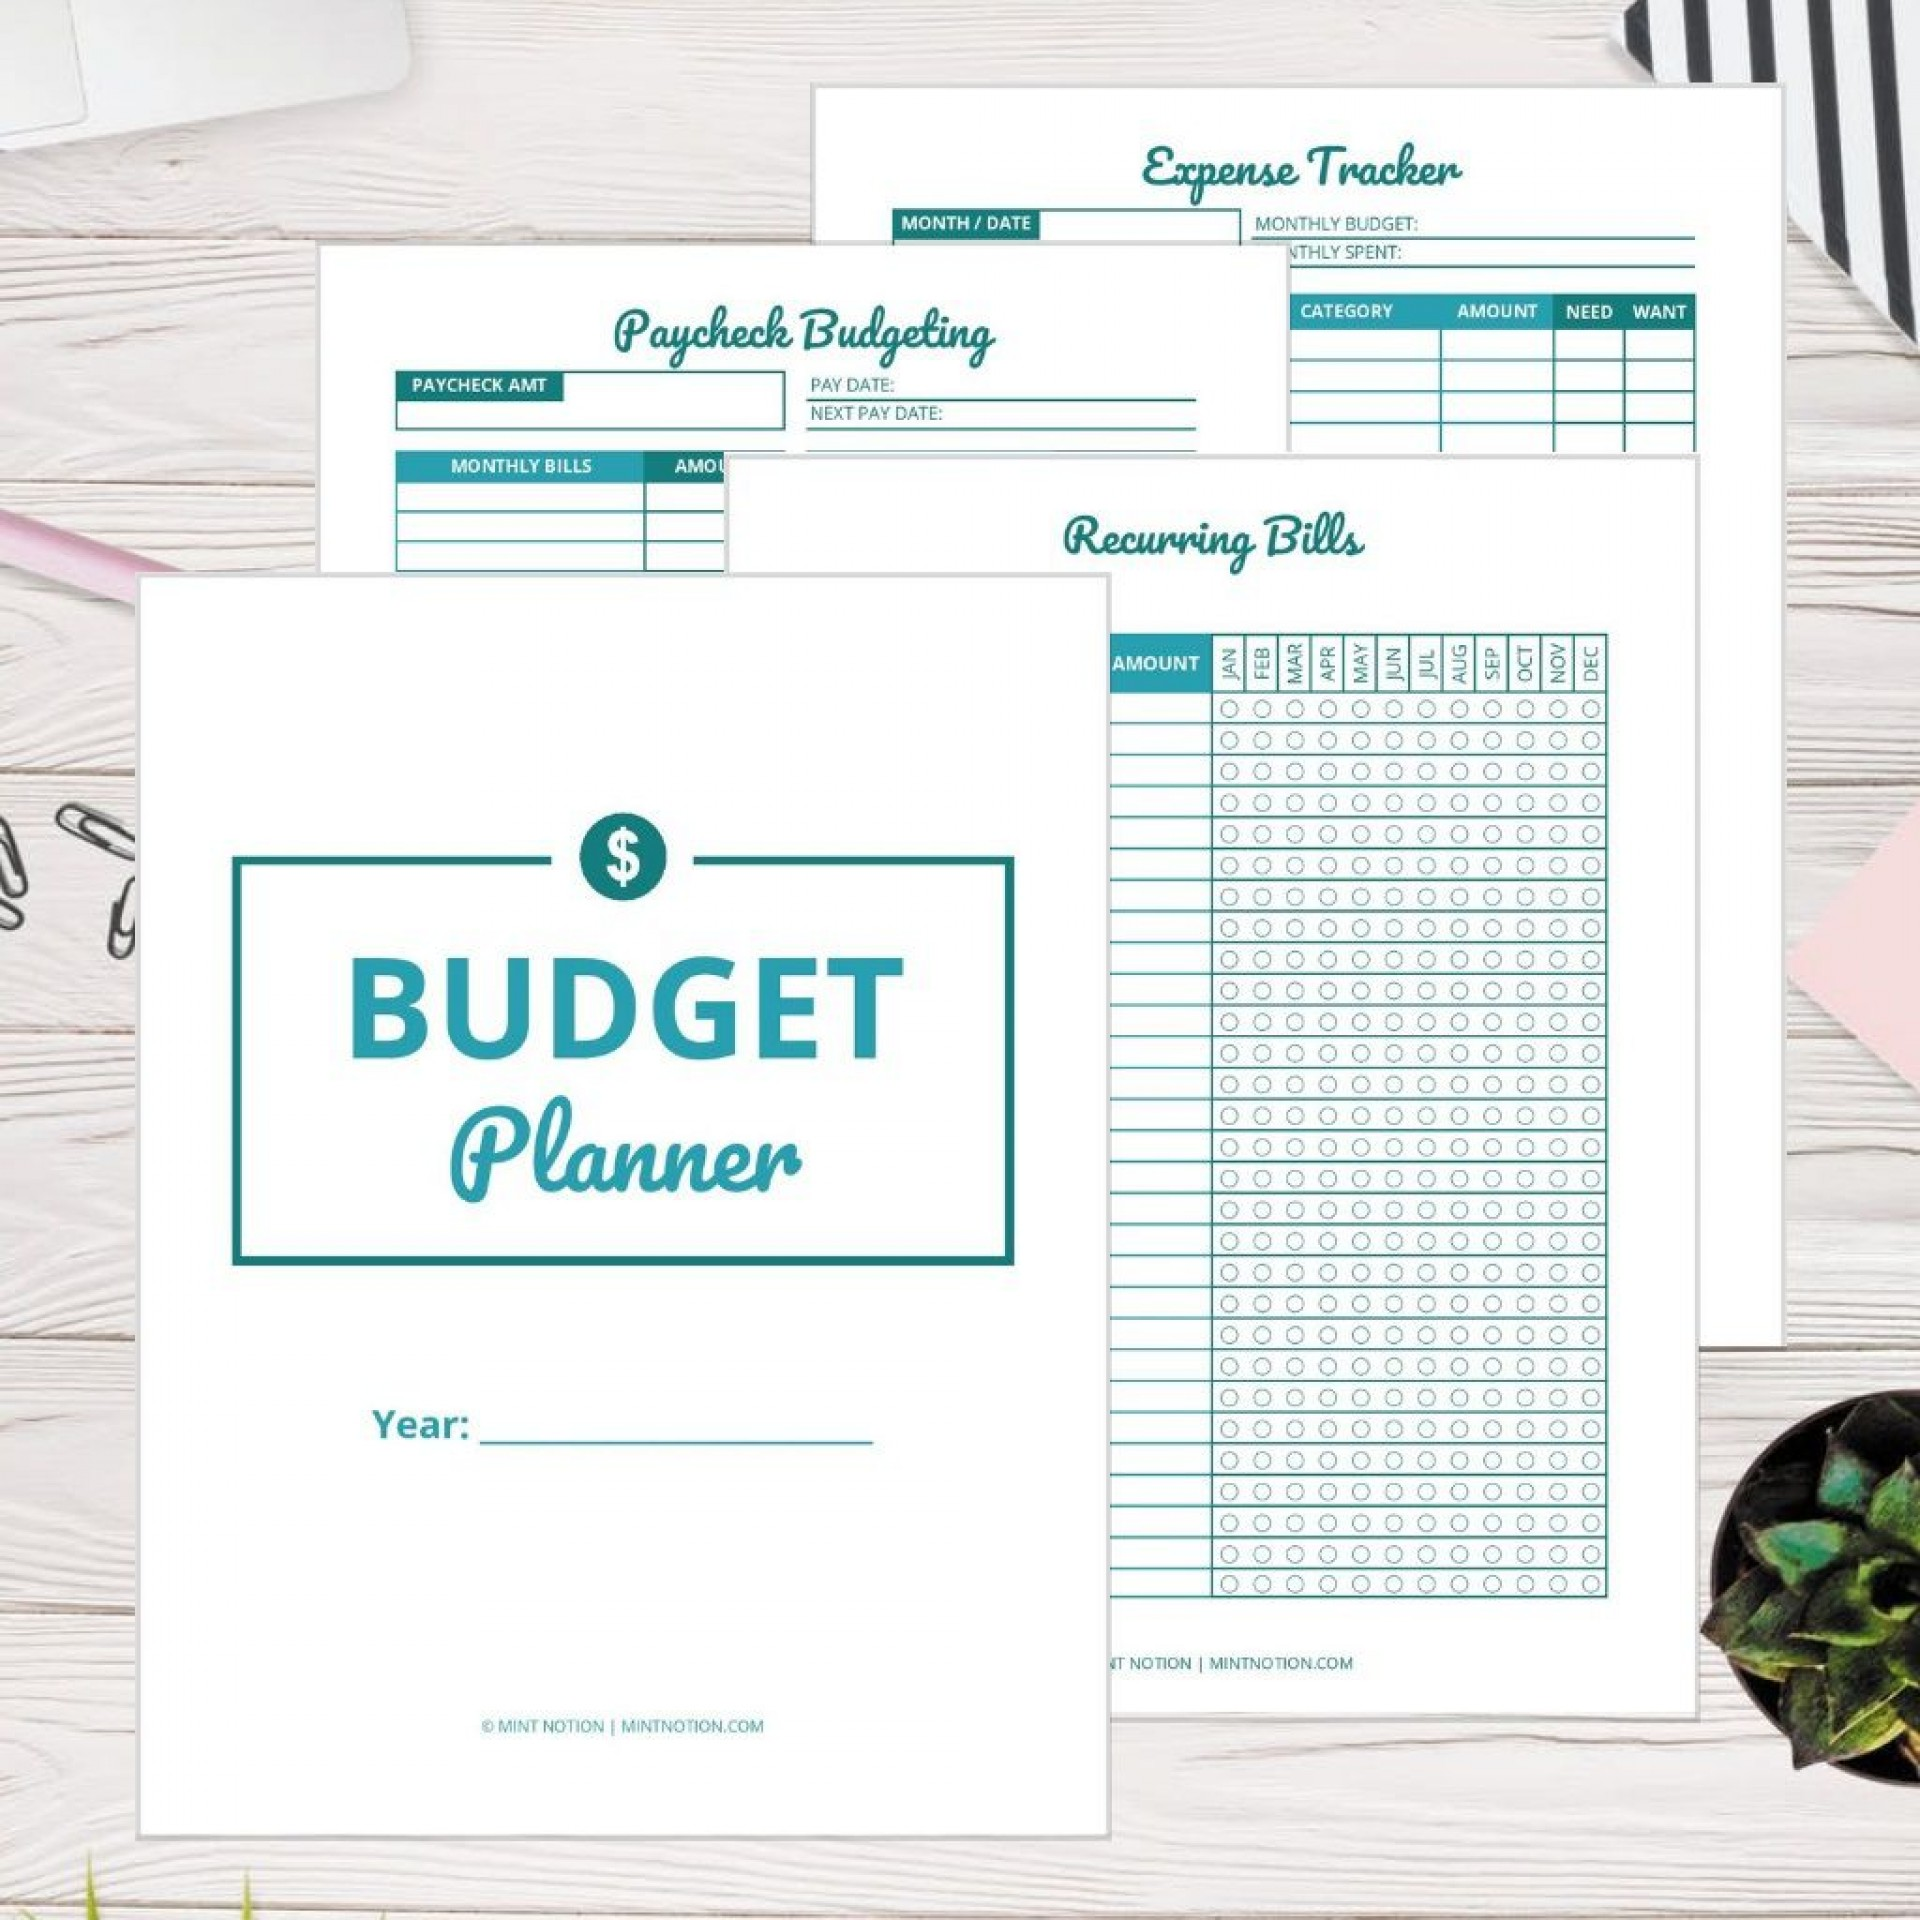 002 Archaicawful Free Monthly Budget Template Printable High Resolution  Simple Worksheet Household Planner Uk1920